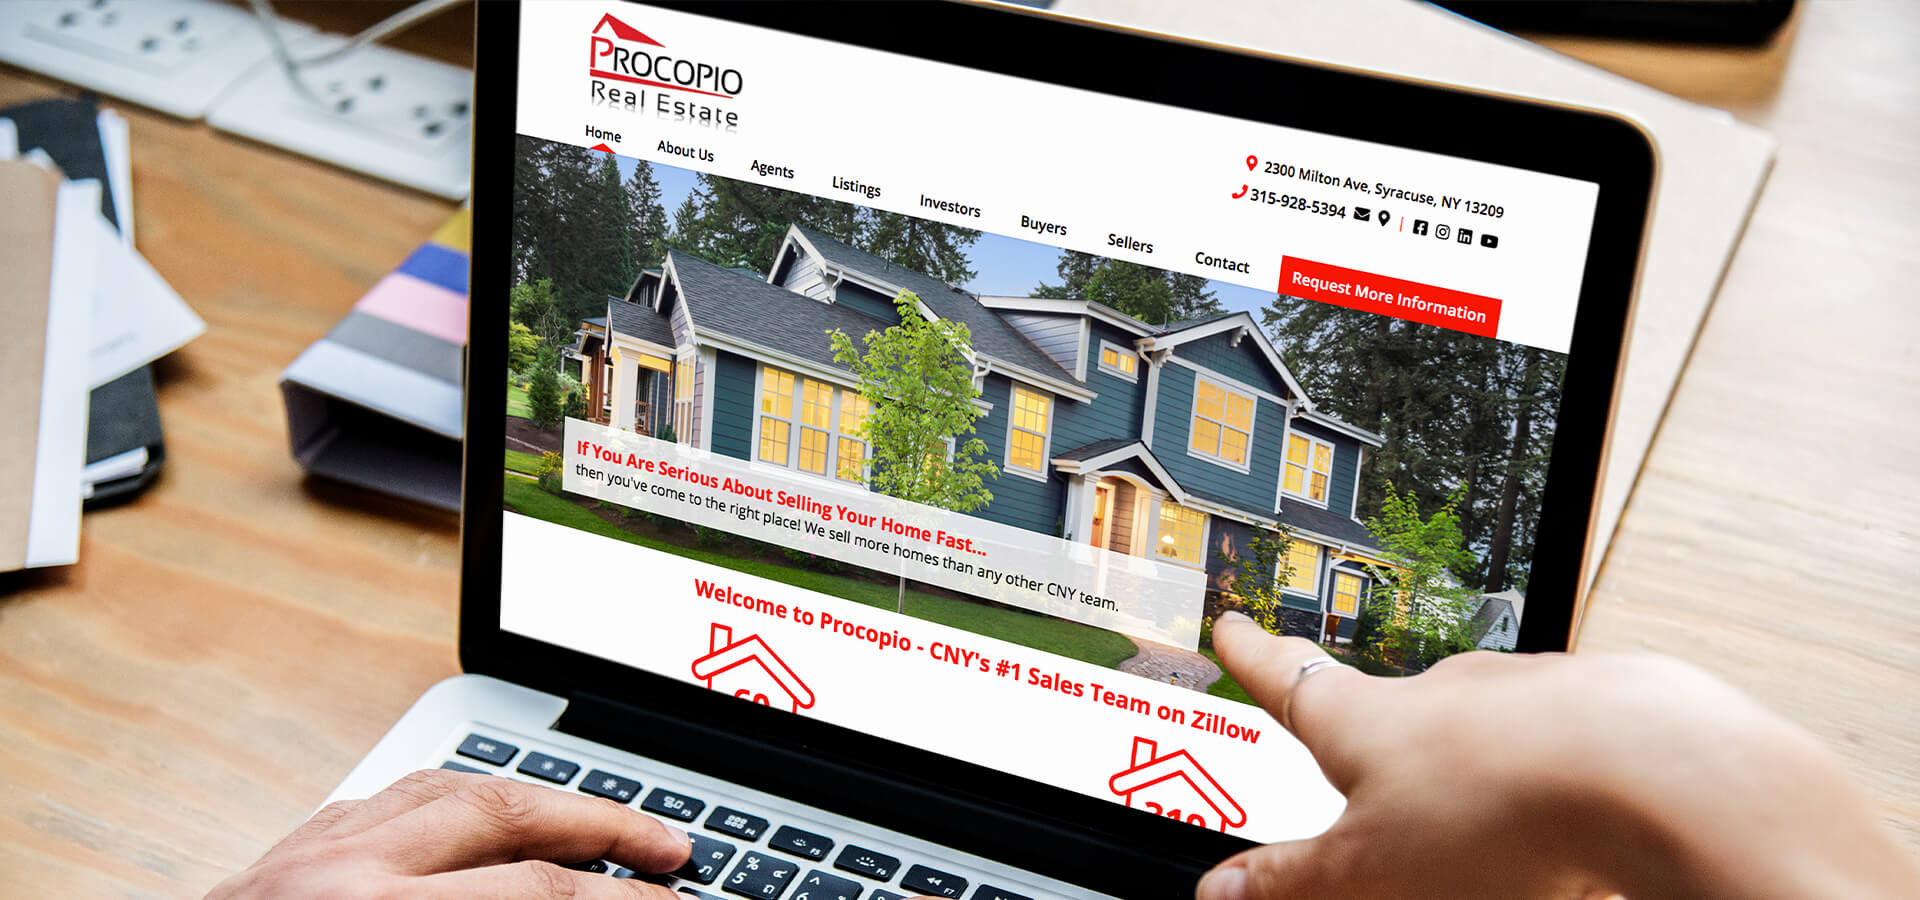 Procopio Real Estate website on a laptop